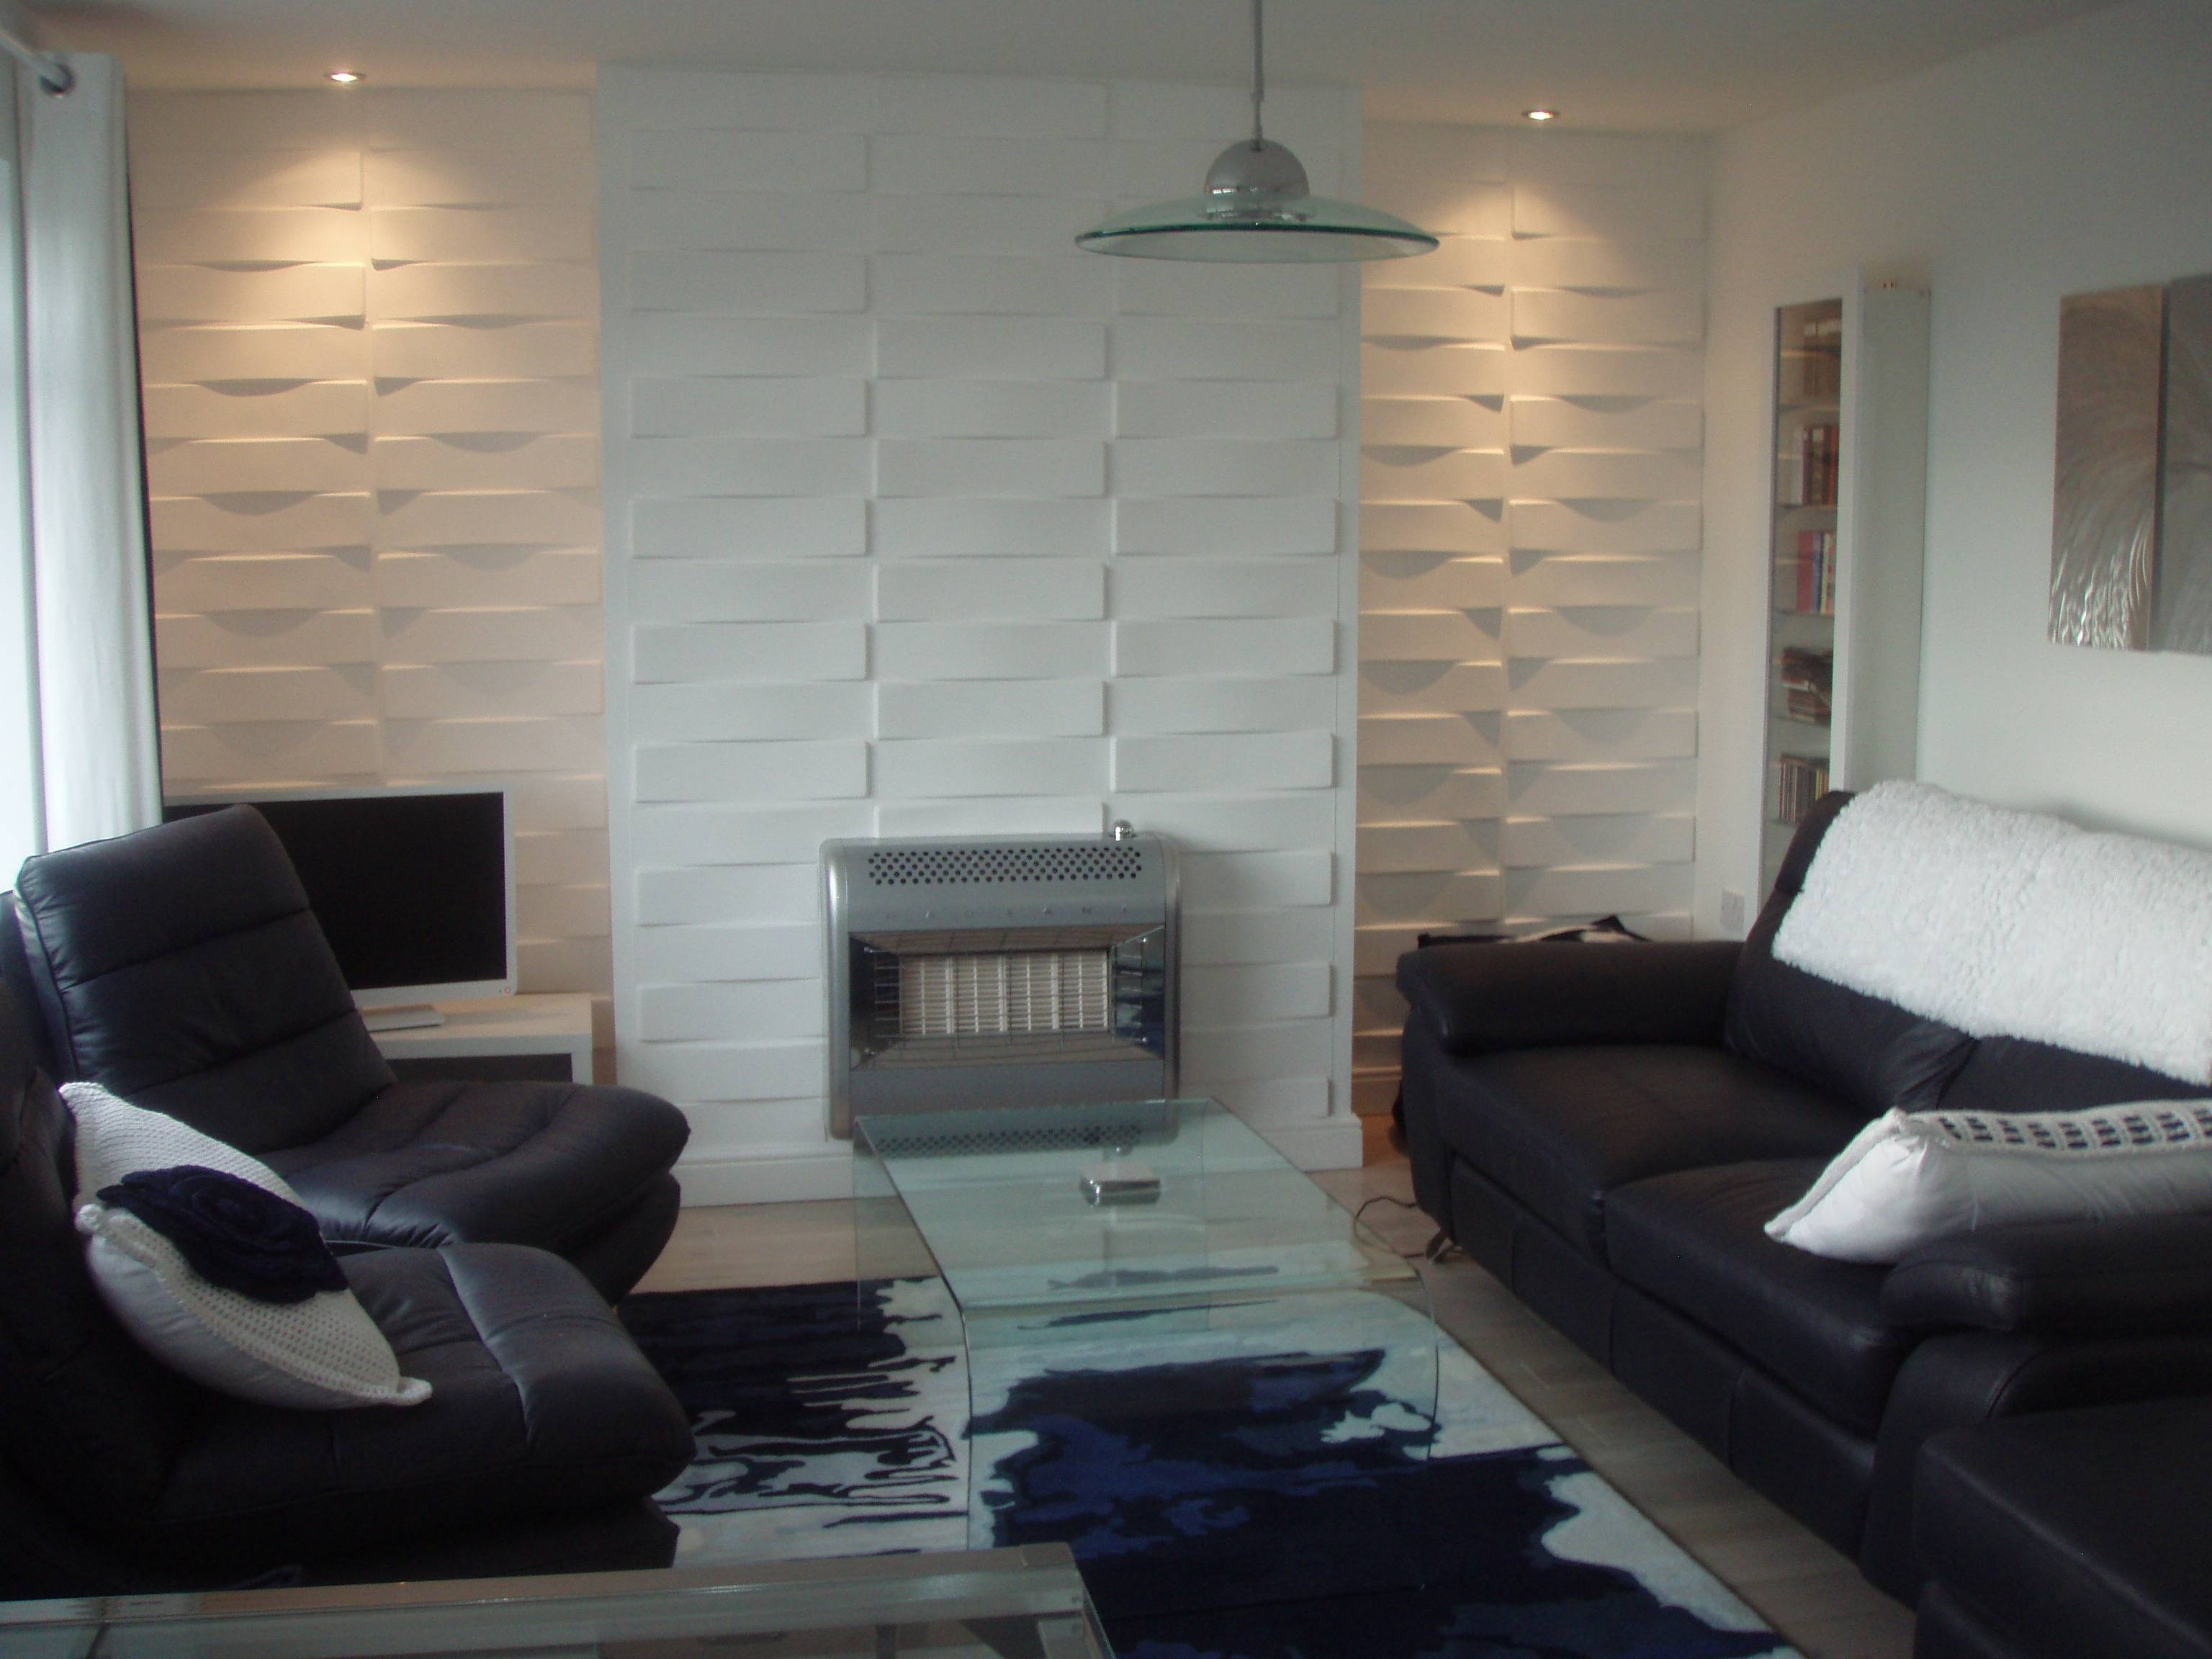 3d Wall Panels | Daisy Decorating & Design With Regard To Recent Painting 3d Wall Panels (View 16 of 20)